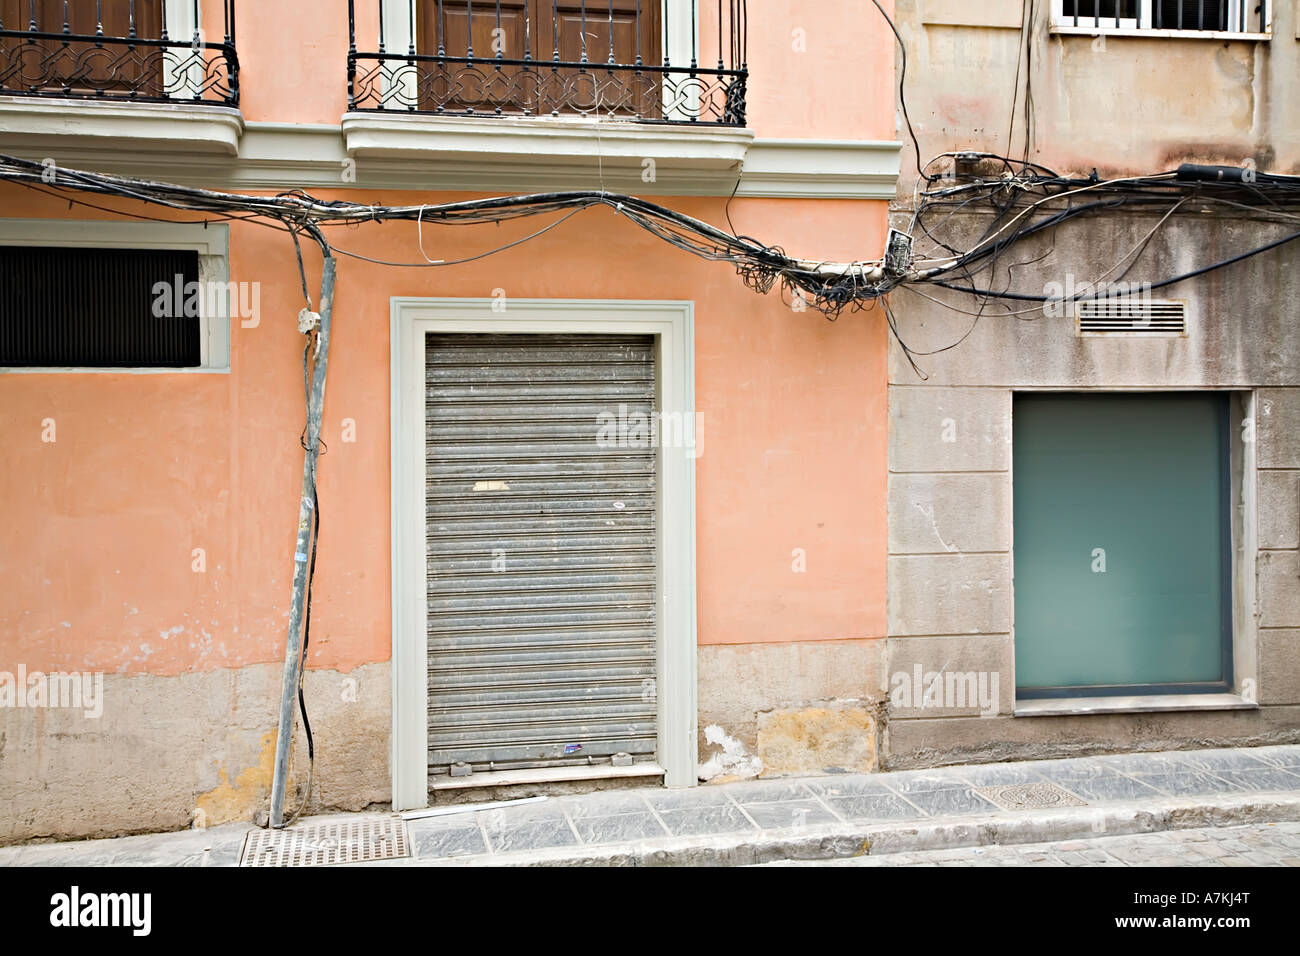 Dangerous Exposed Electrical Wiring On Outside Of House Granada Spain